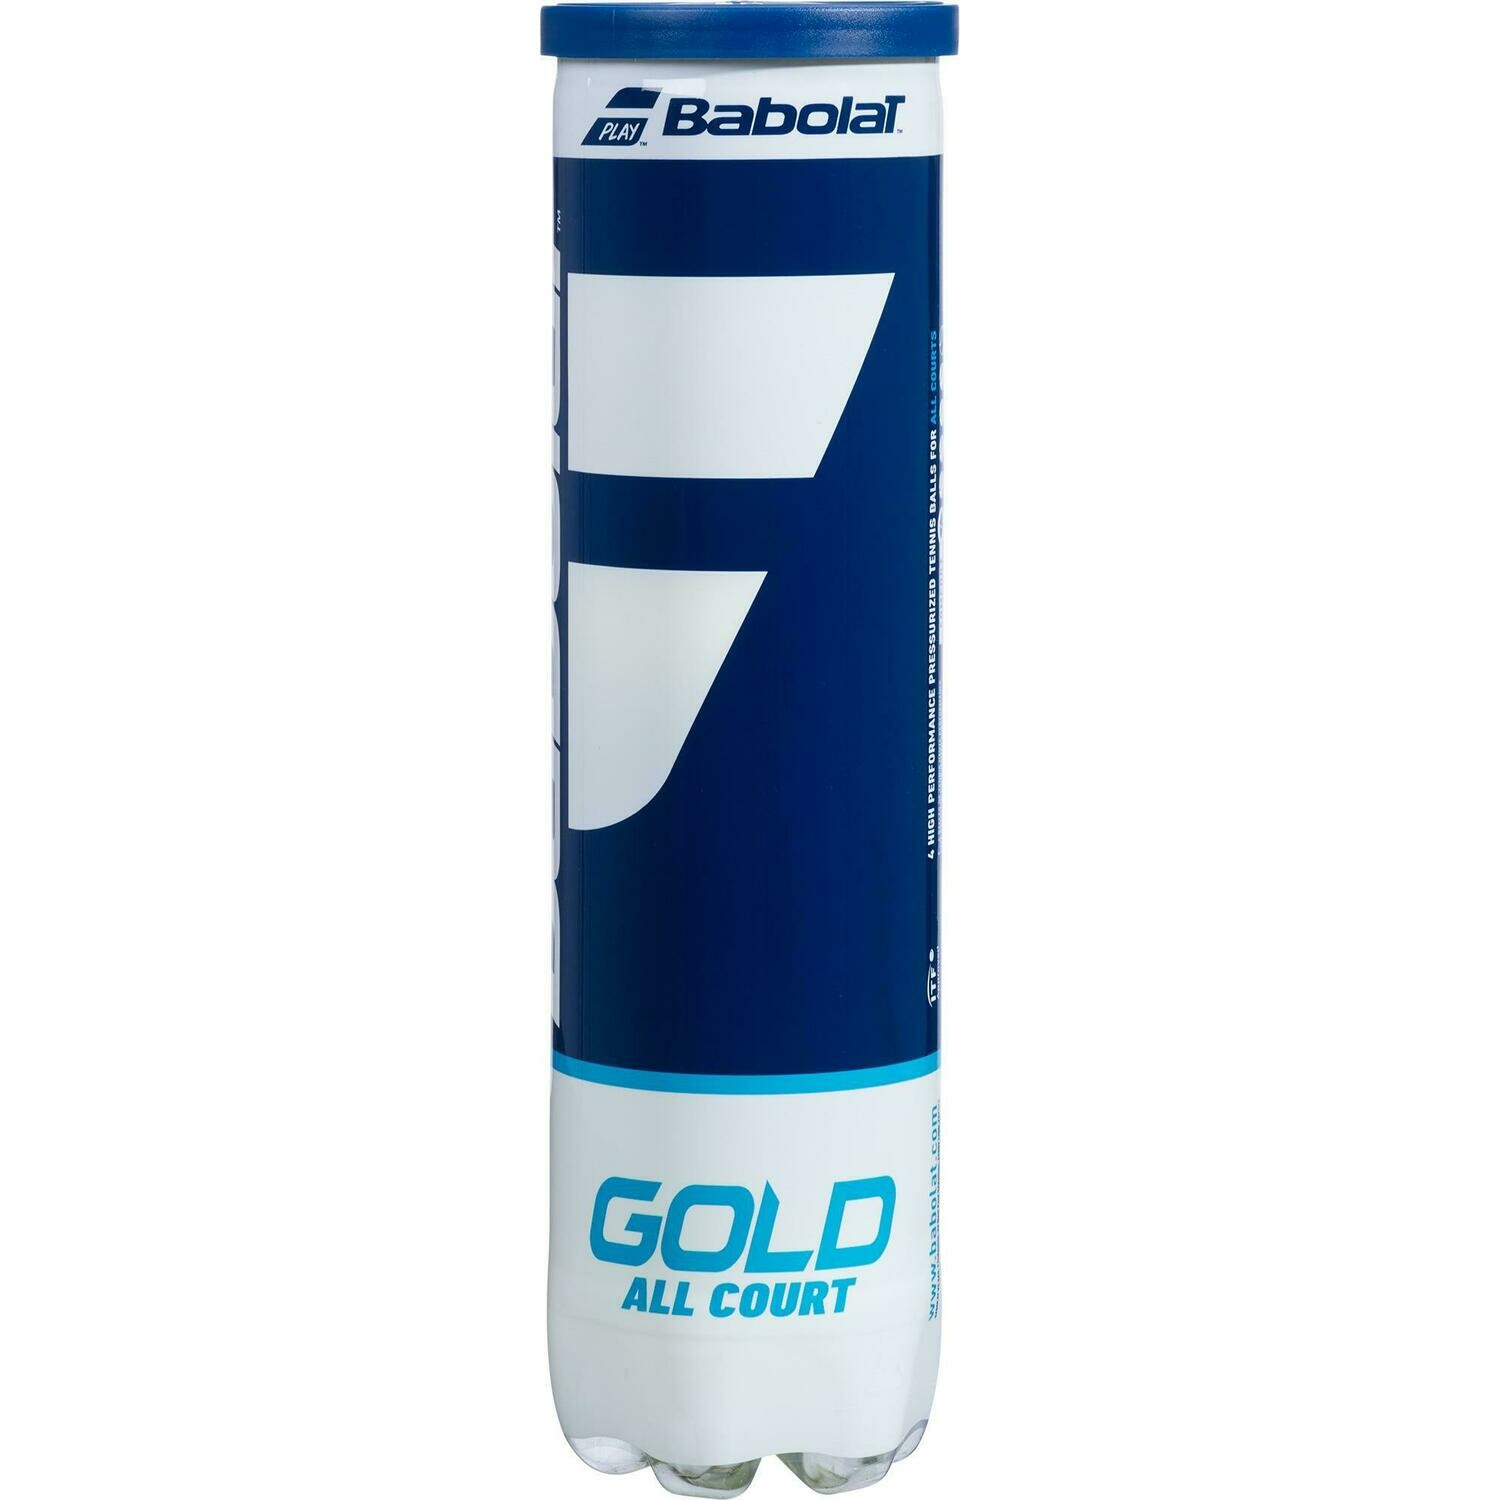 Babolat Gold Tennis Balls - 4 Ball Can